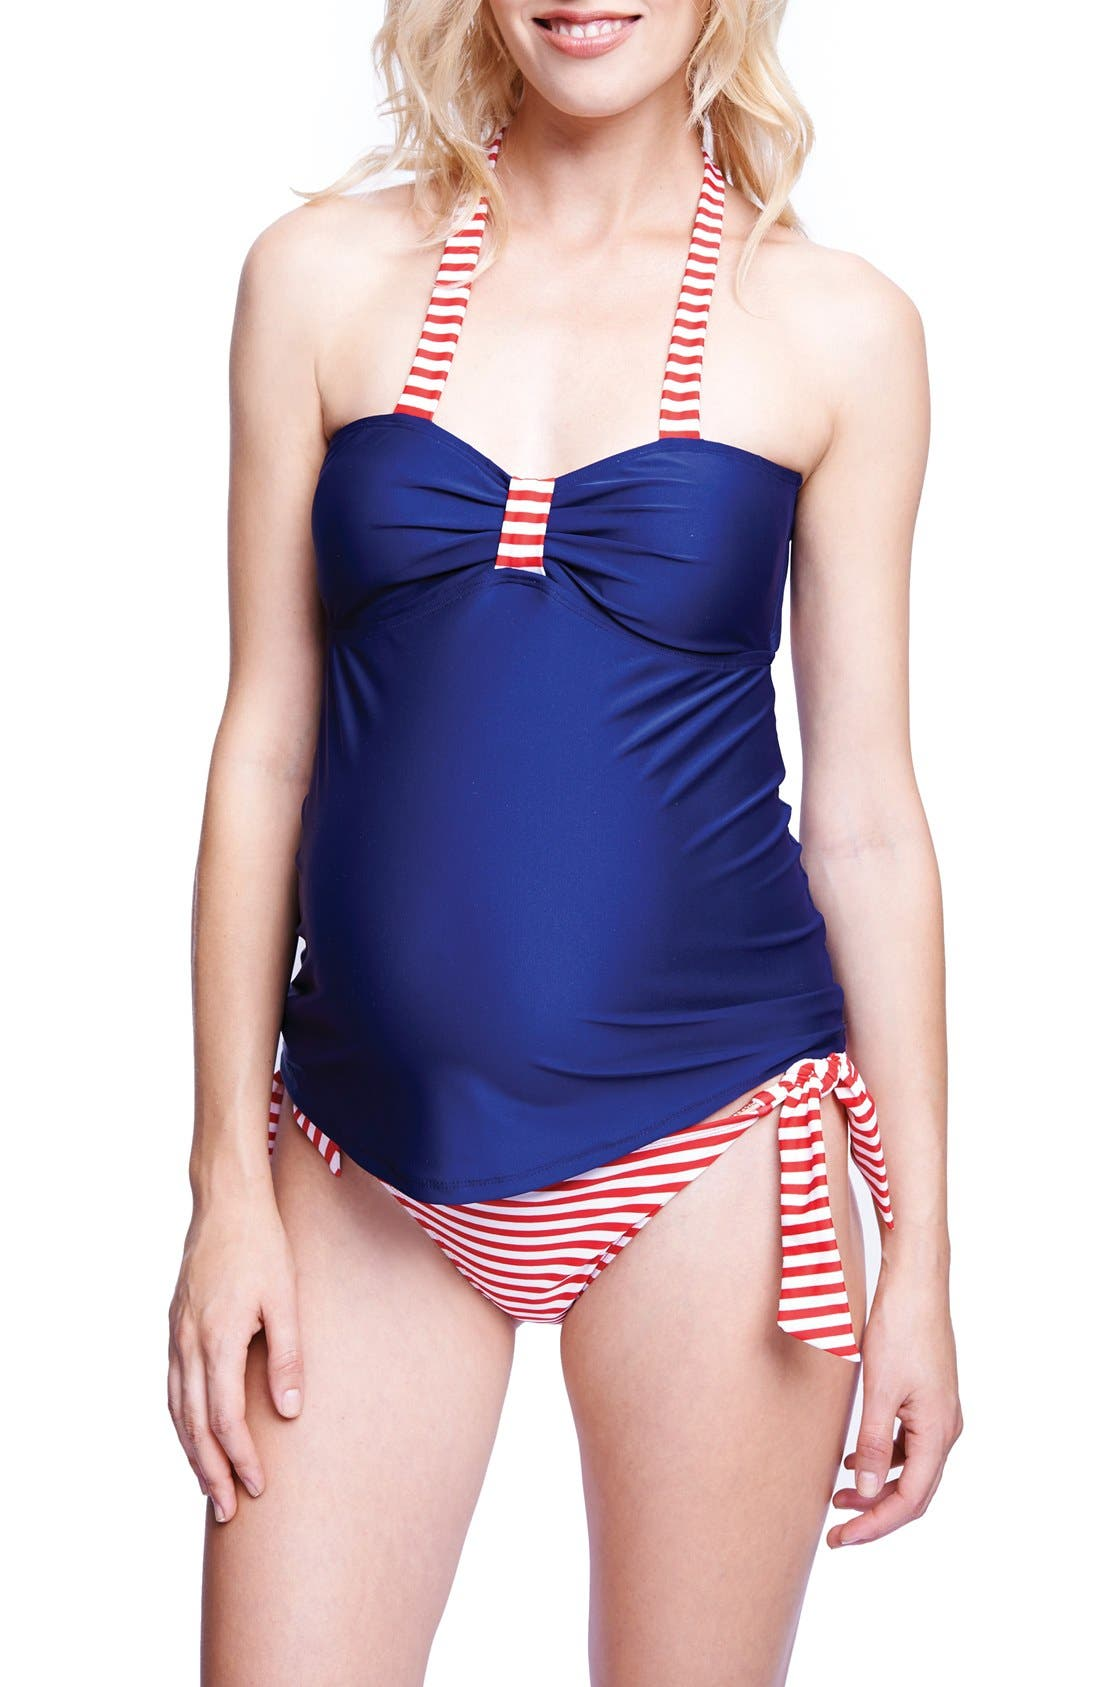 Maternity 'Carrie' Halter Tankini,                             Main thumbnail 1, color,                             NAVY/ RED STRIPES